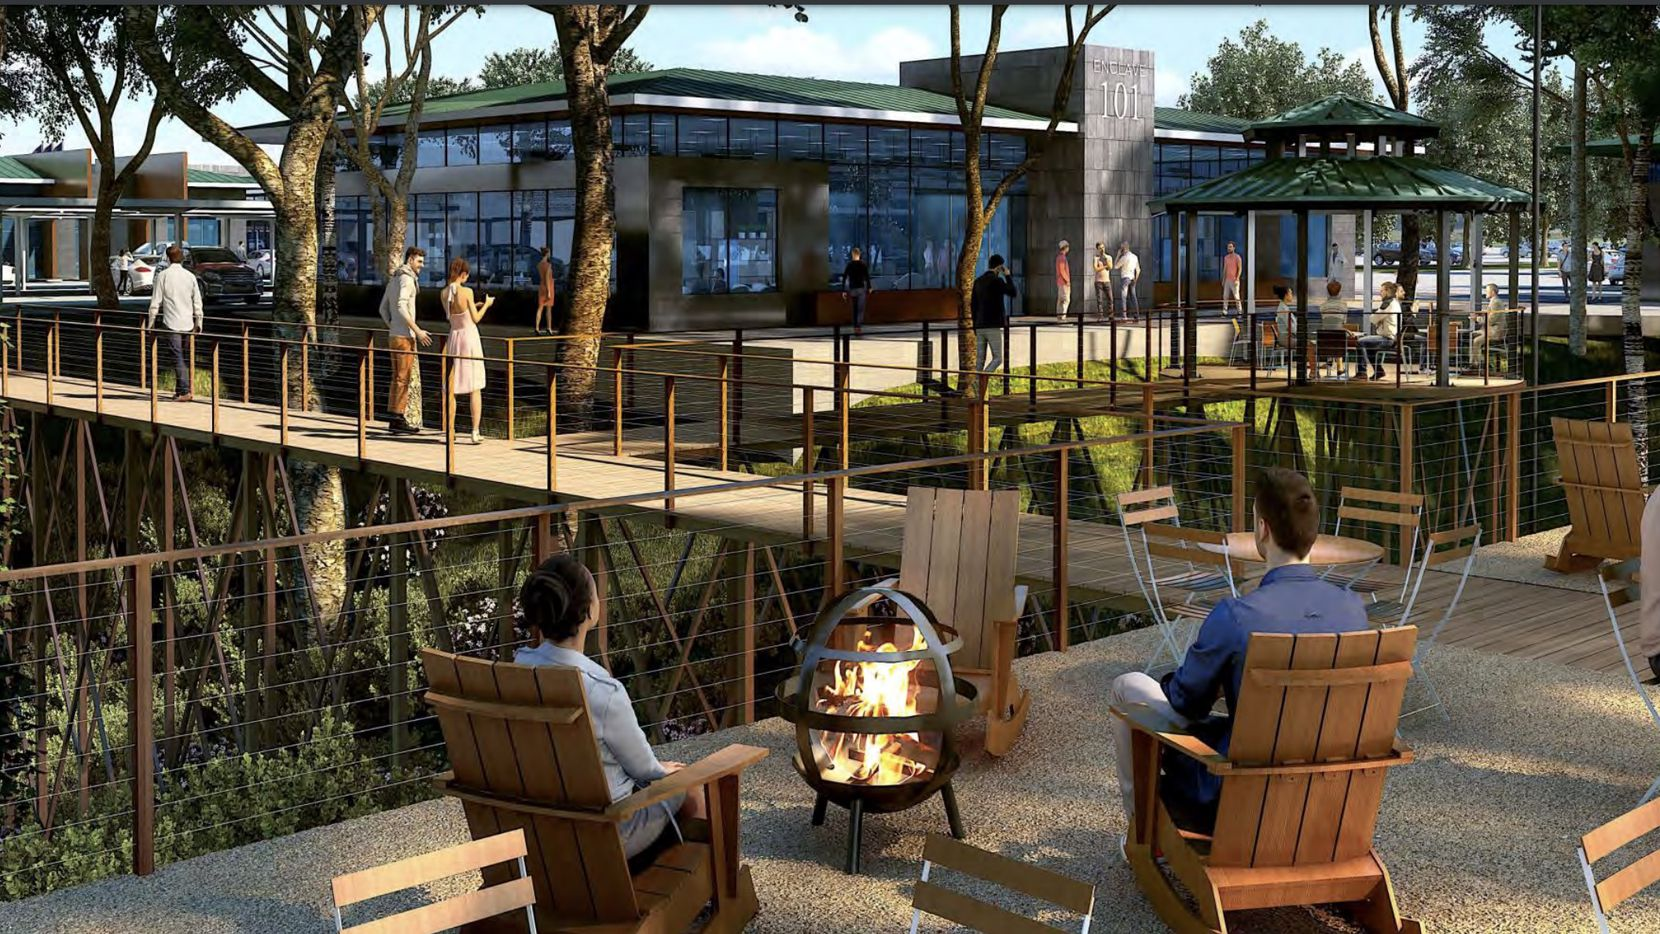 The Enclave in Frisco office campus would have creekside walking trails and patio areas.